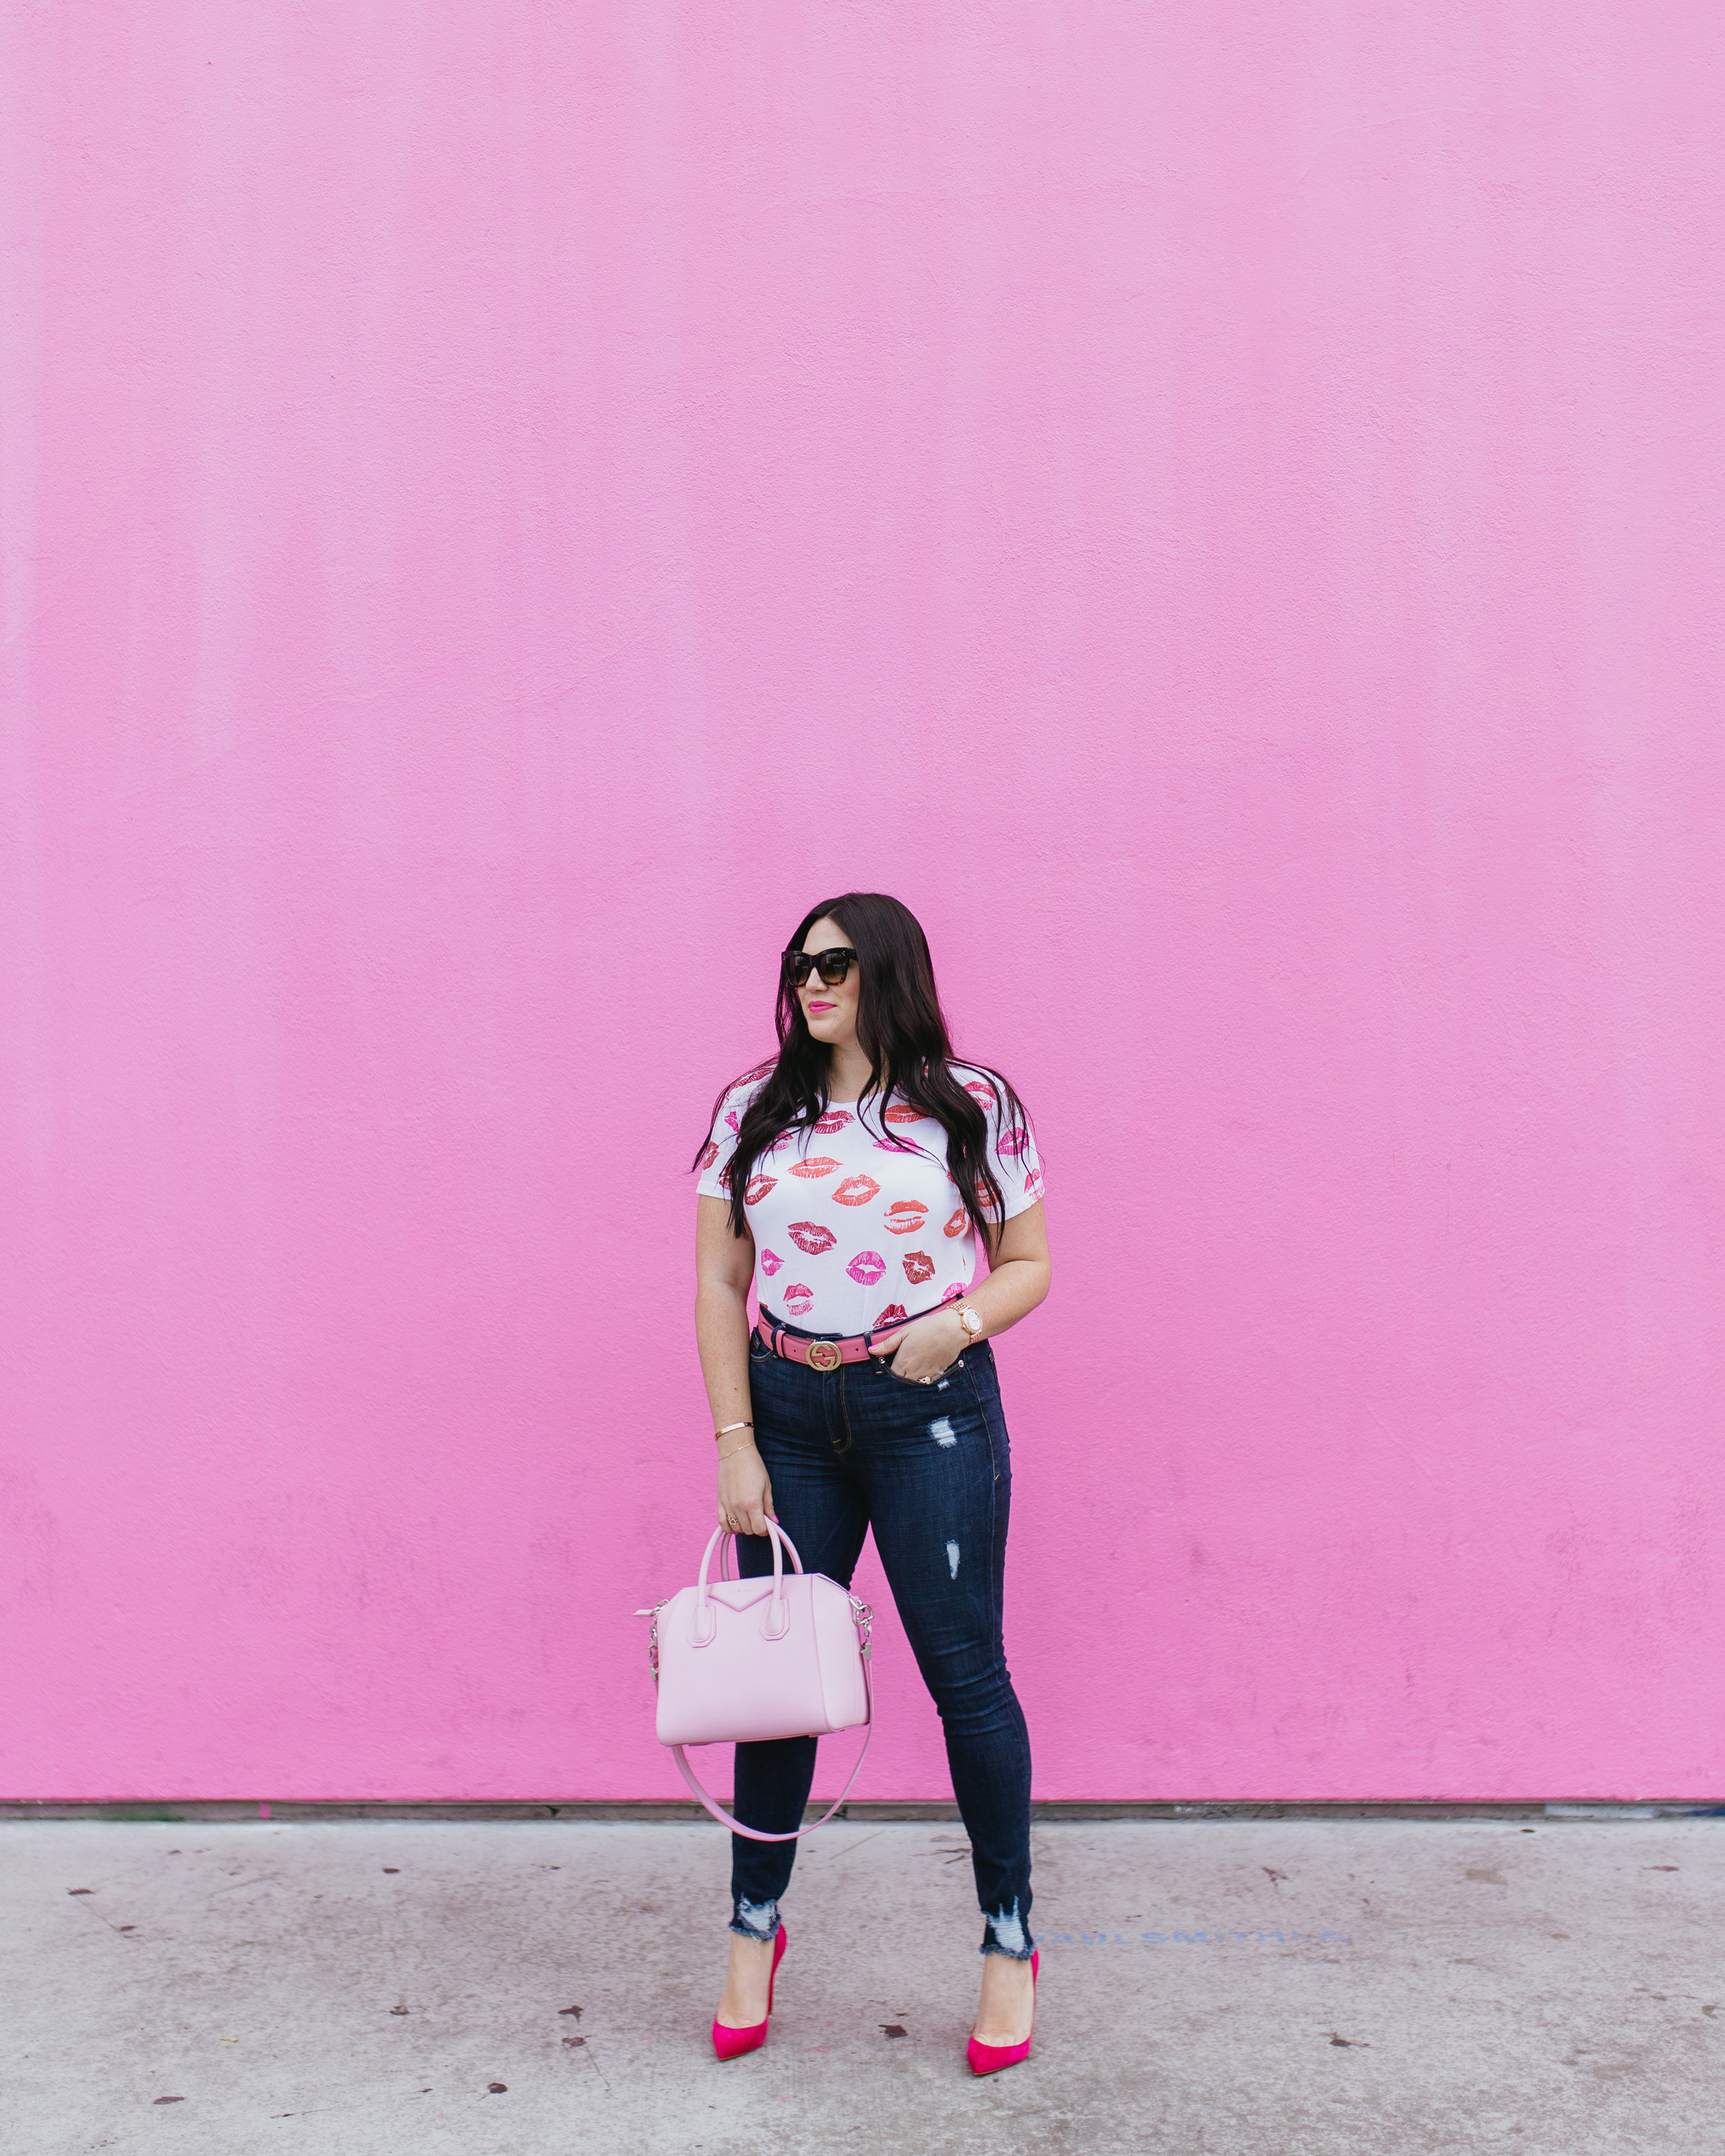 los angeles fashion blogger photographer